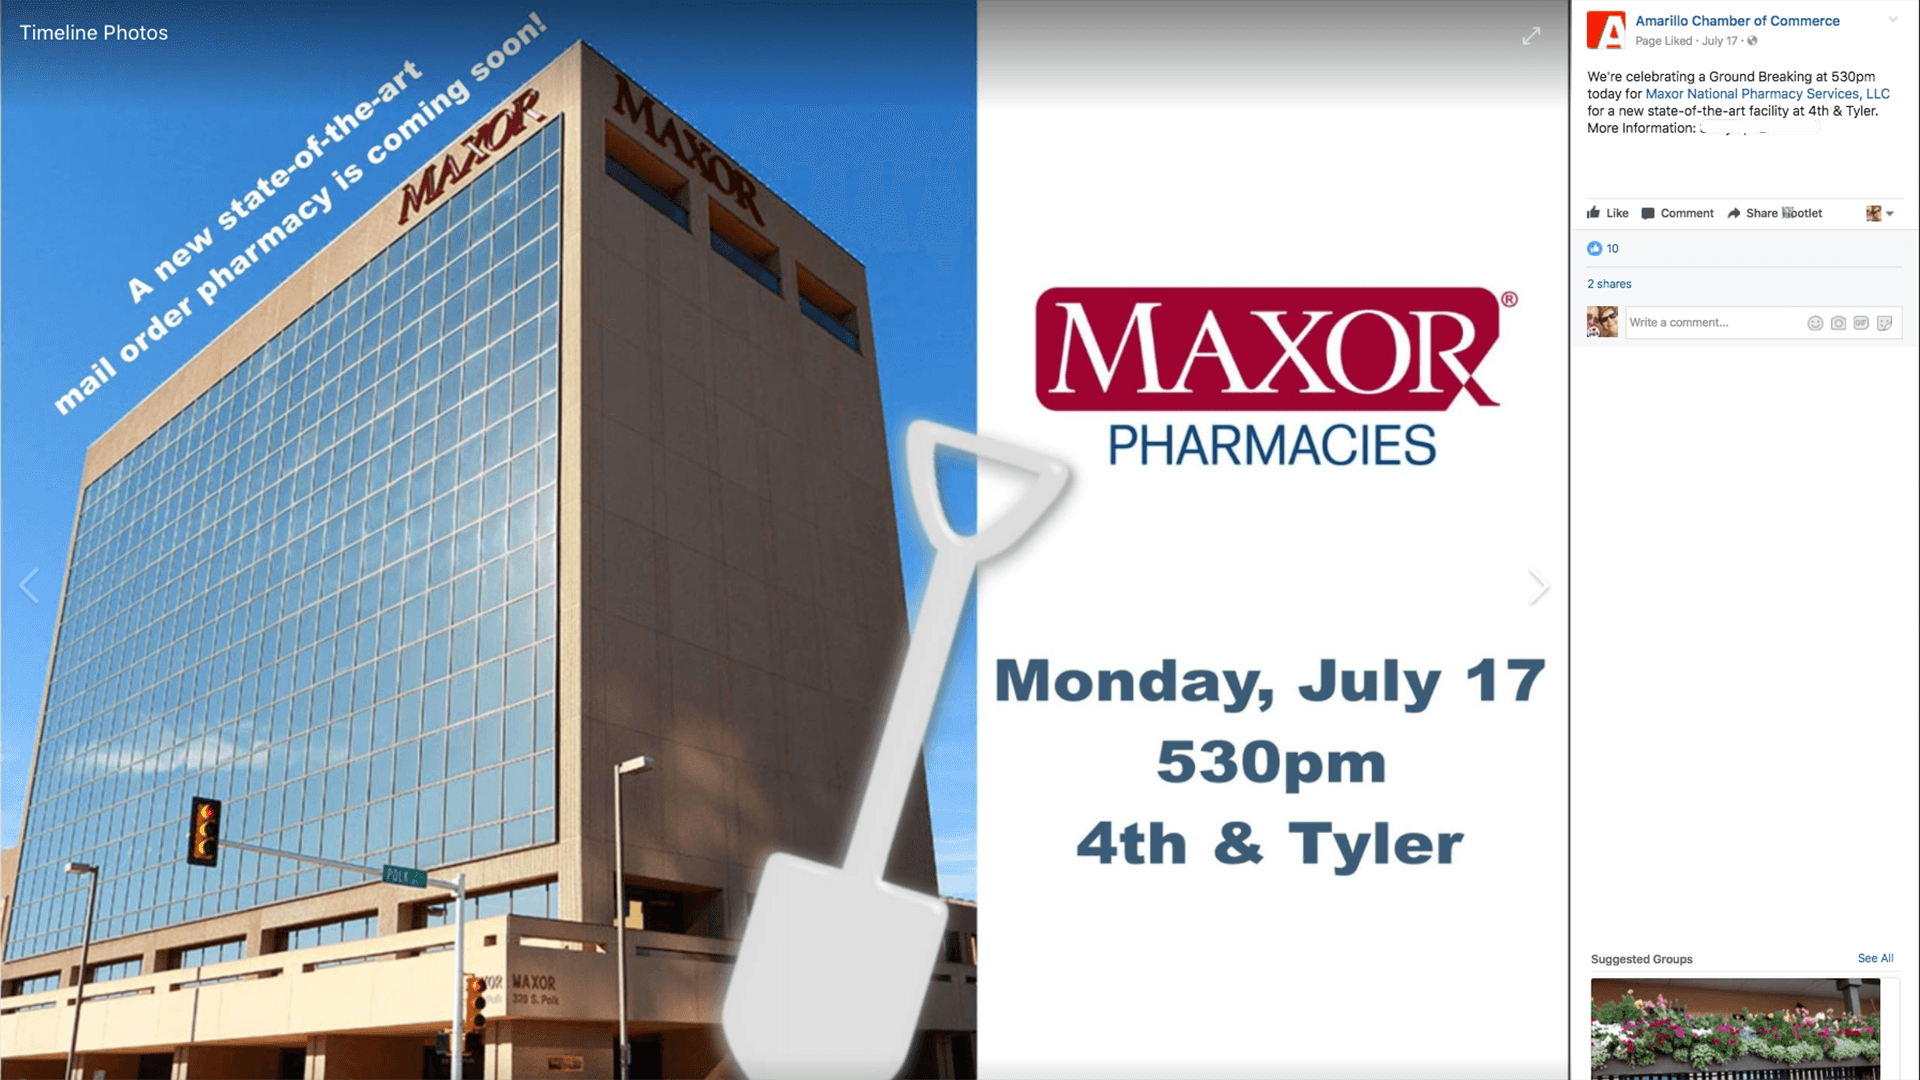 Maxor has a new prescription for downtown Amarillo